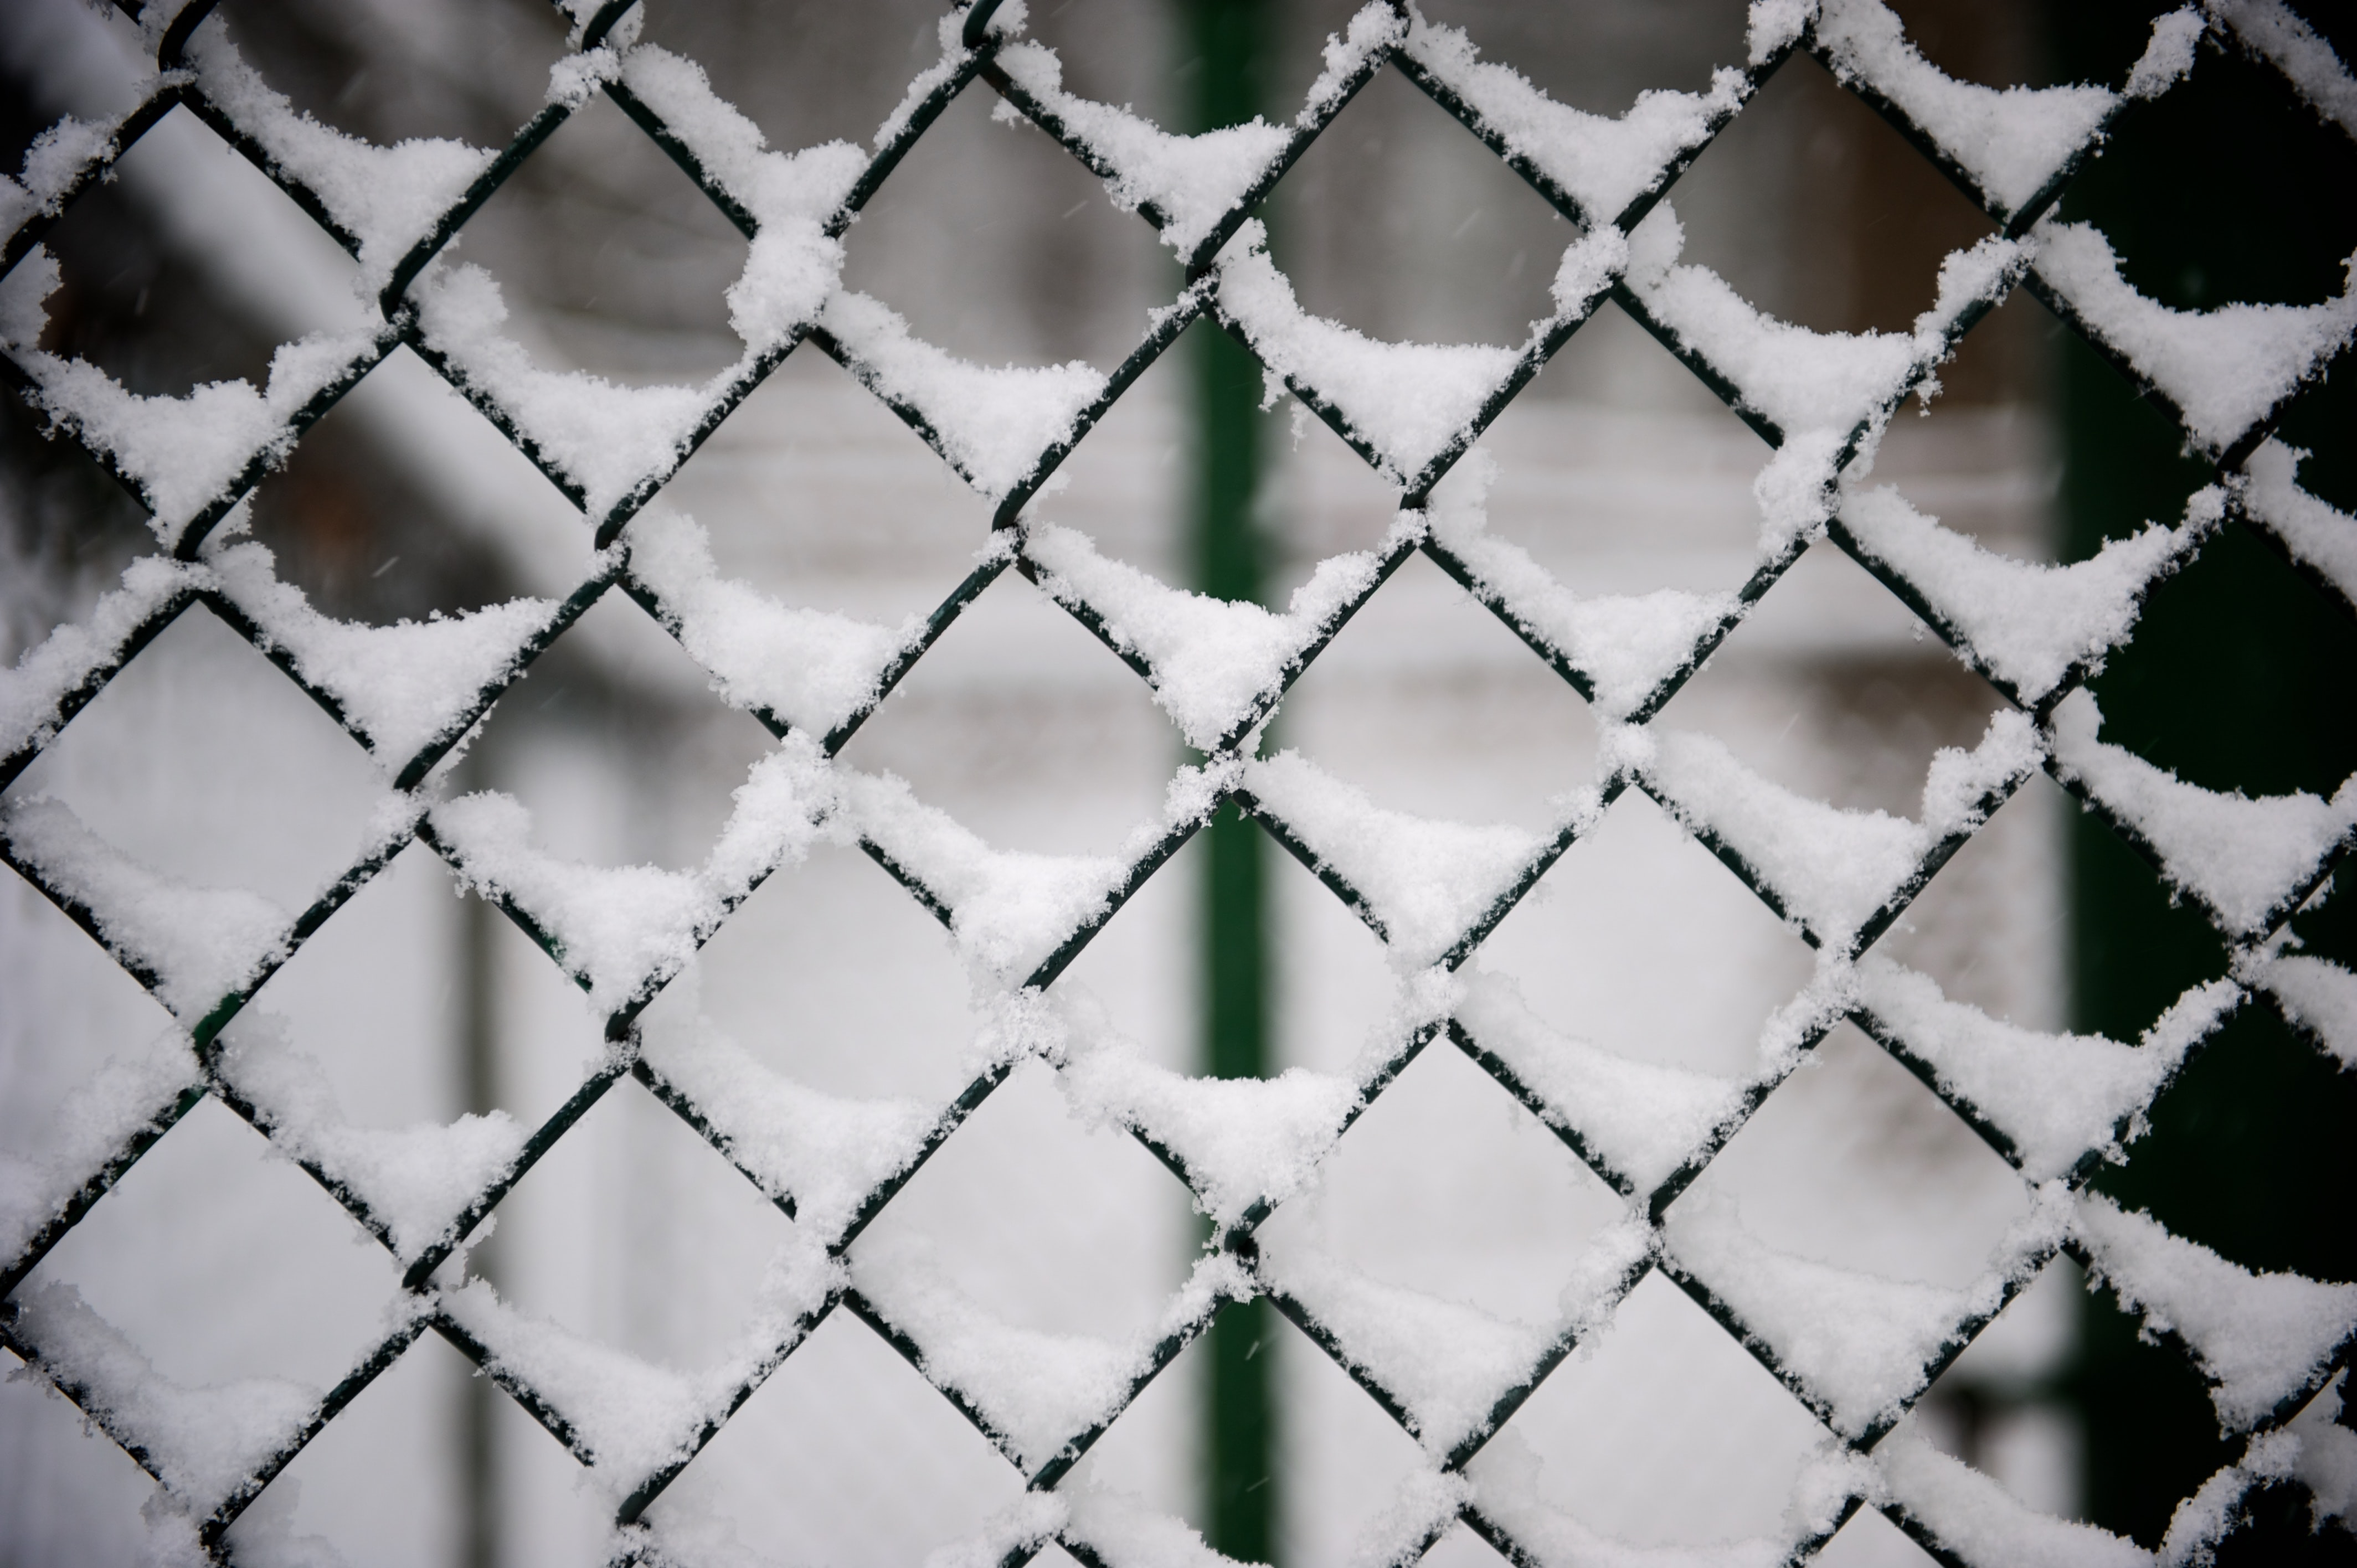 A macro view of a chainlink fence covered with snow in winter.